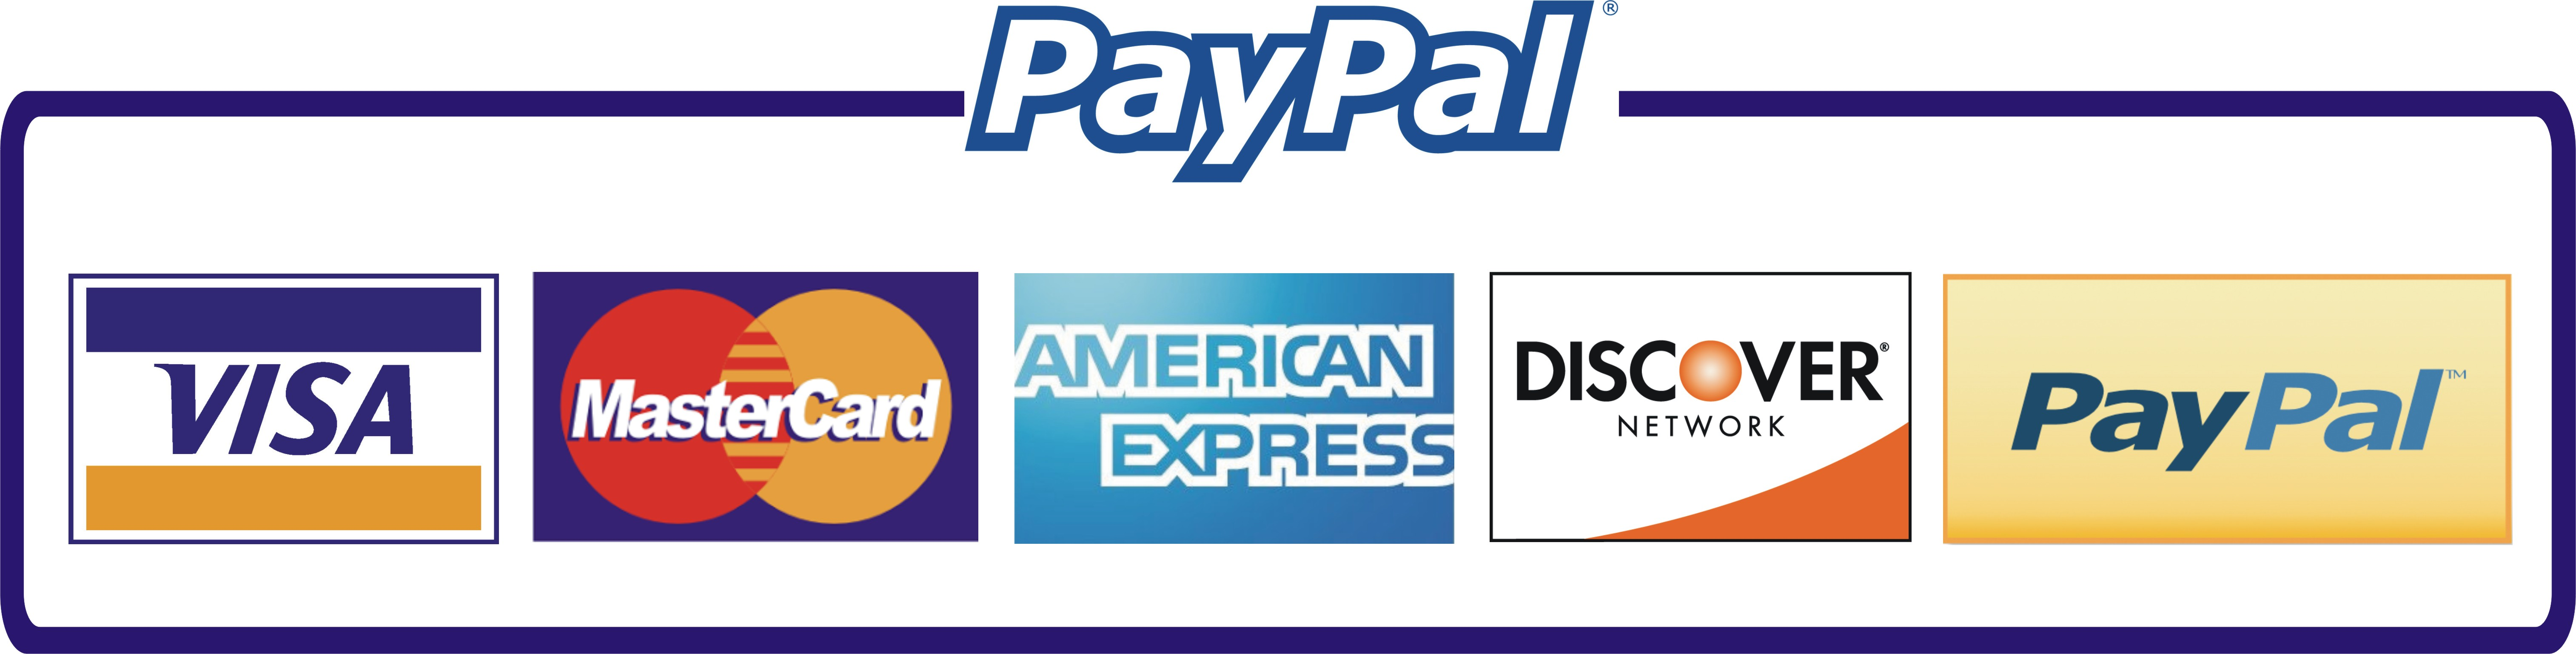 paypal-credit-cards.jpg